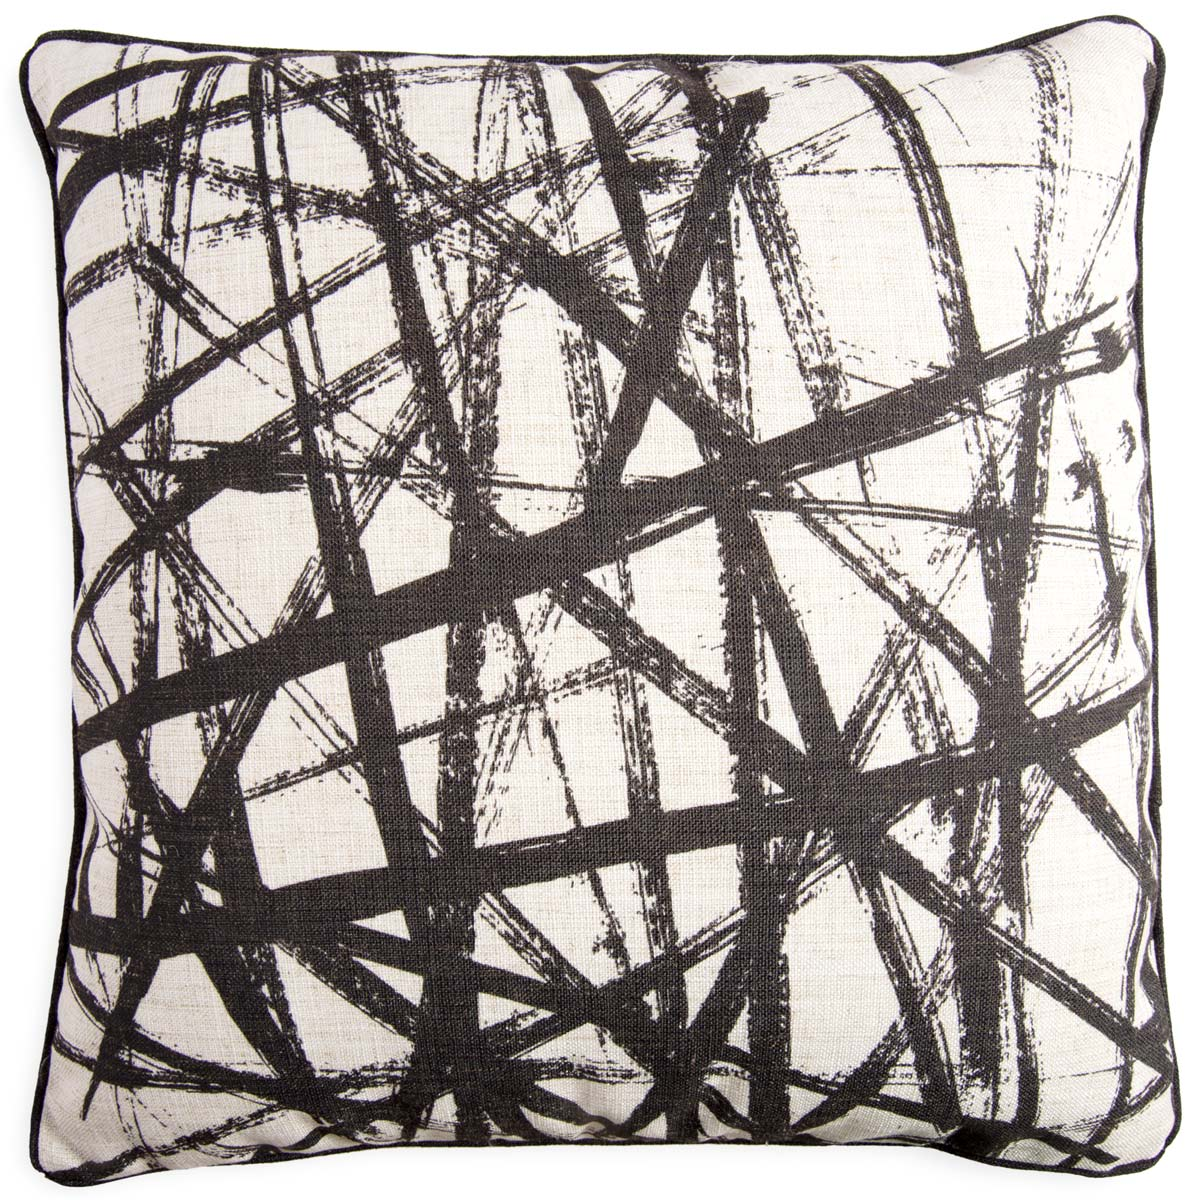 Throw pillow with a white background and black brush strokes design.